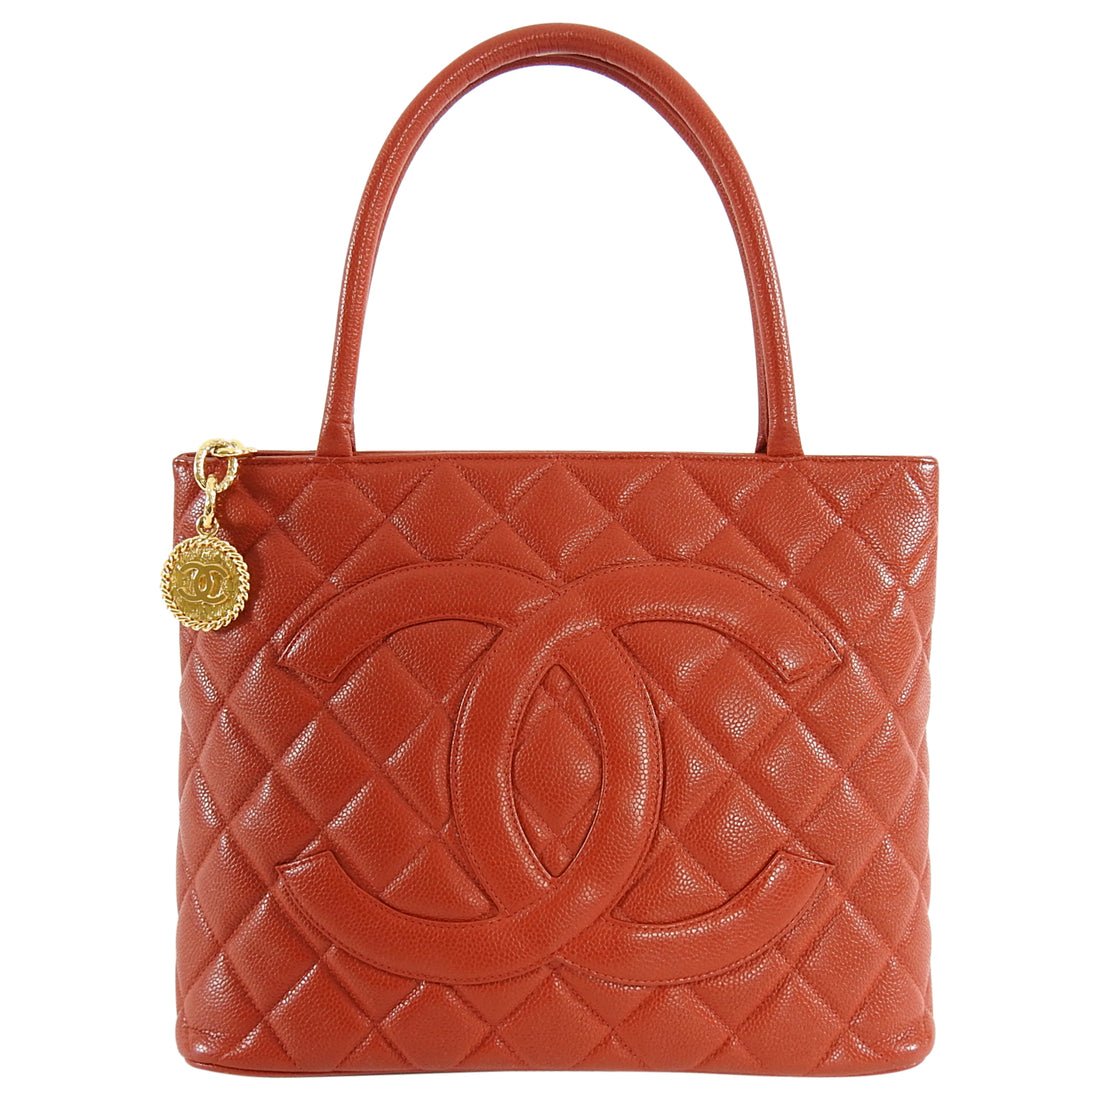 Chanel Vintage 1997 Red Caviar CC Medallion Tote Bag